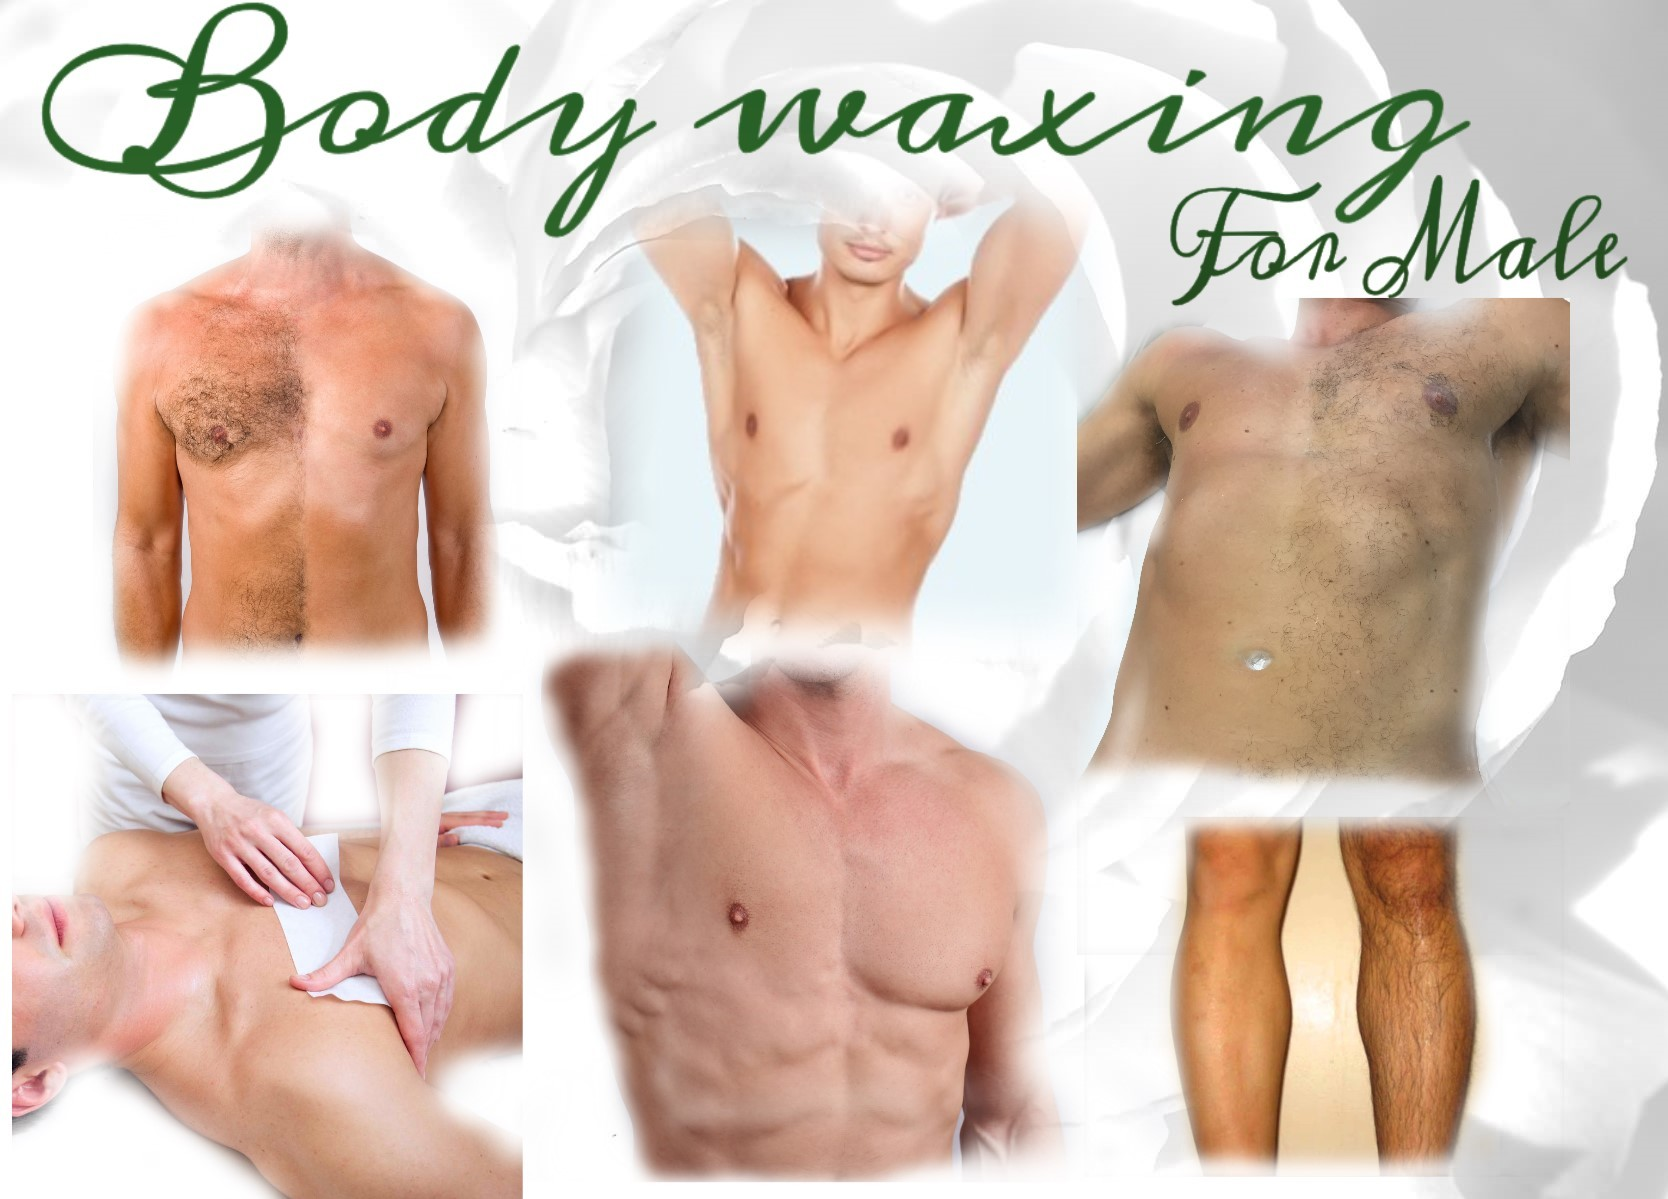 Male Body Wax